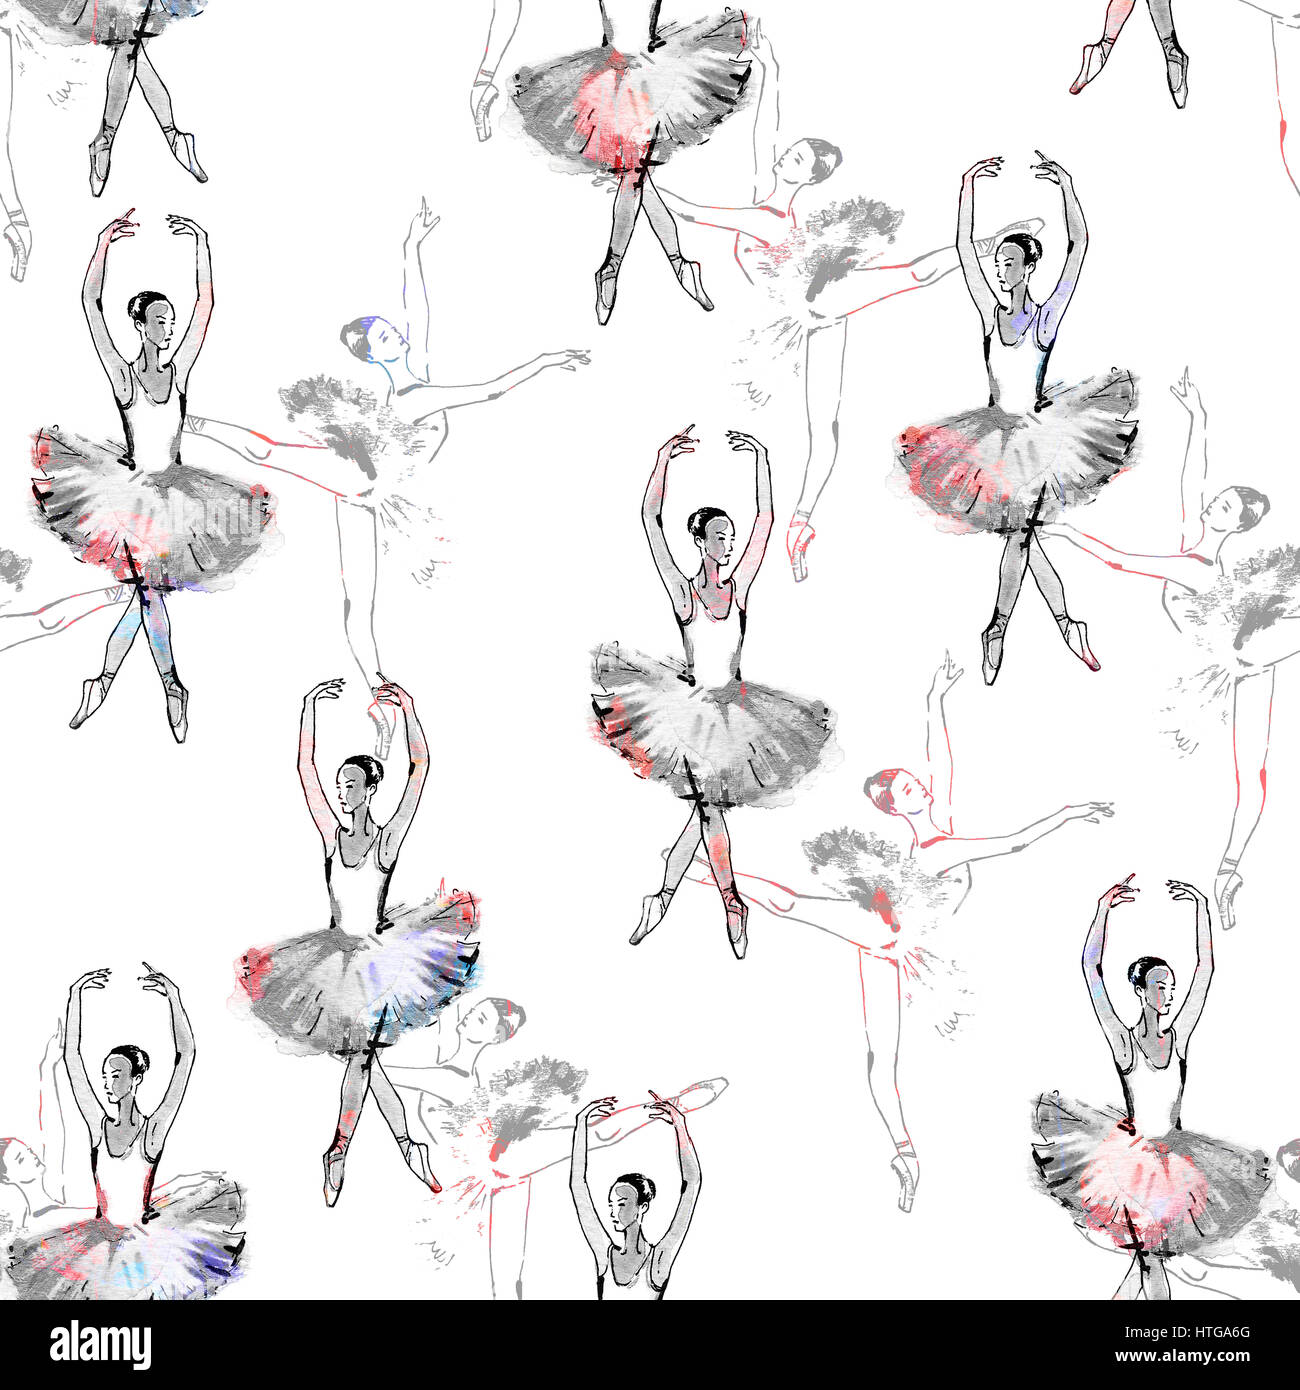 Seamless pattern of ballet dancers royalty free stock photography - Seamless Pattern Of Ballet Dancers Black And Silver Drawing Watercolor Painting Monochrome With